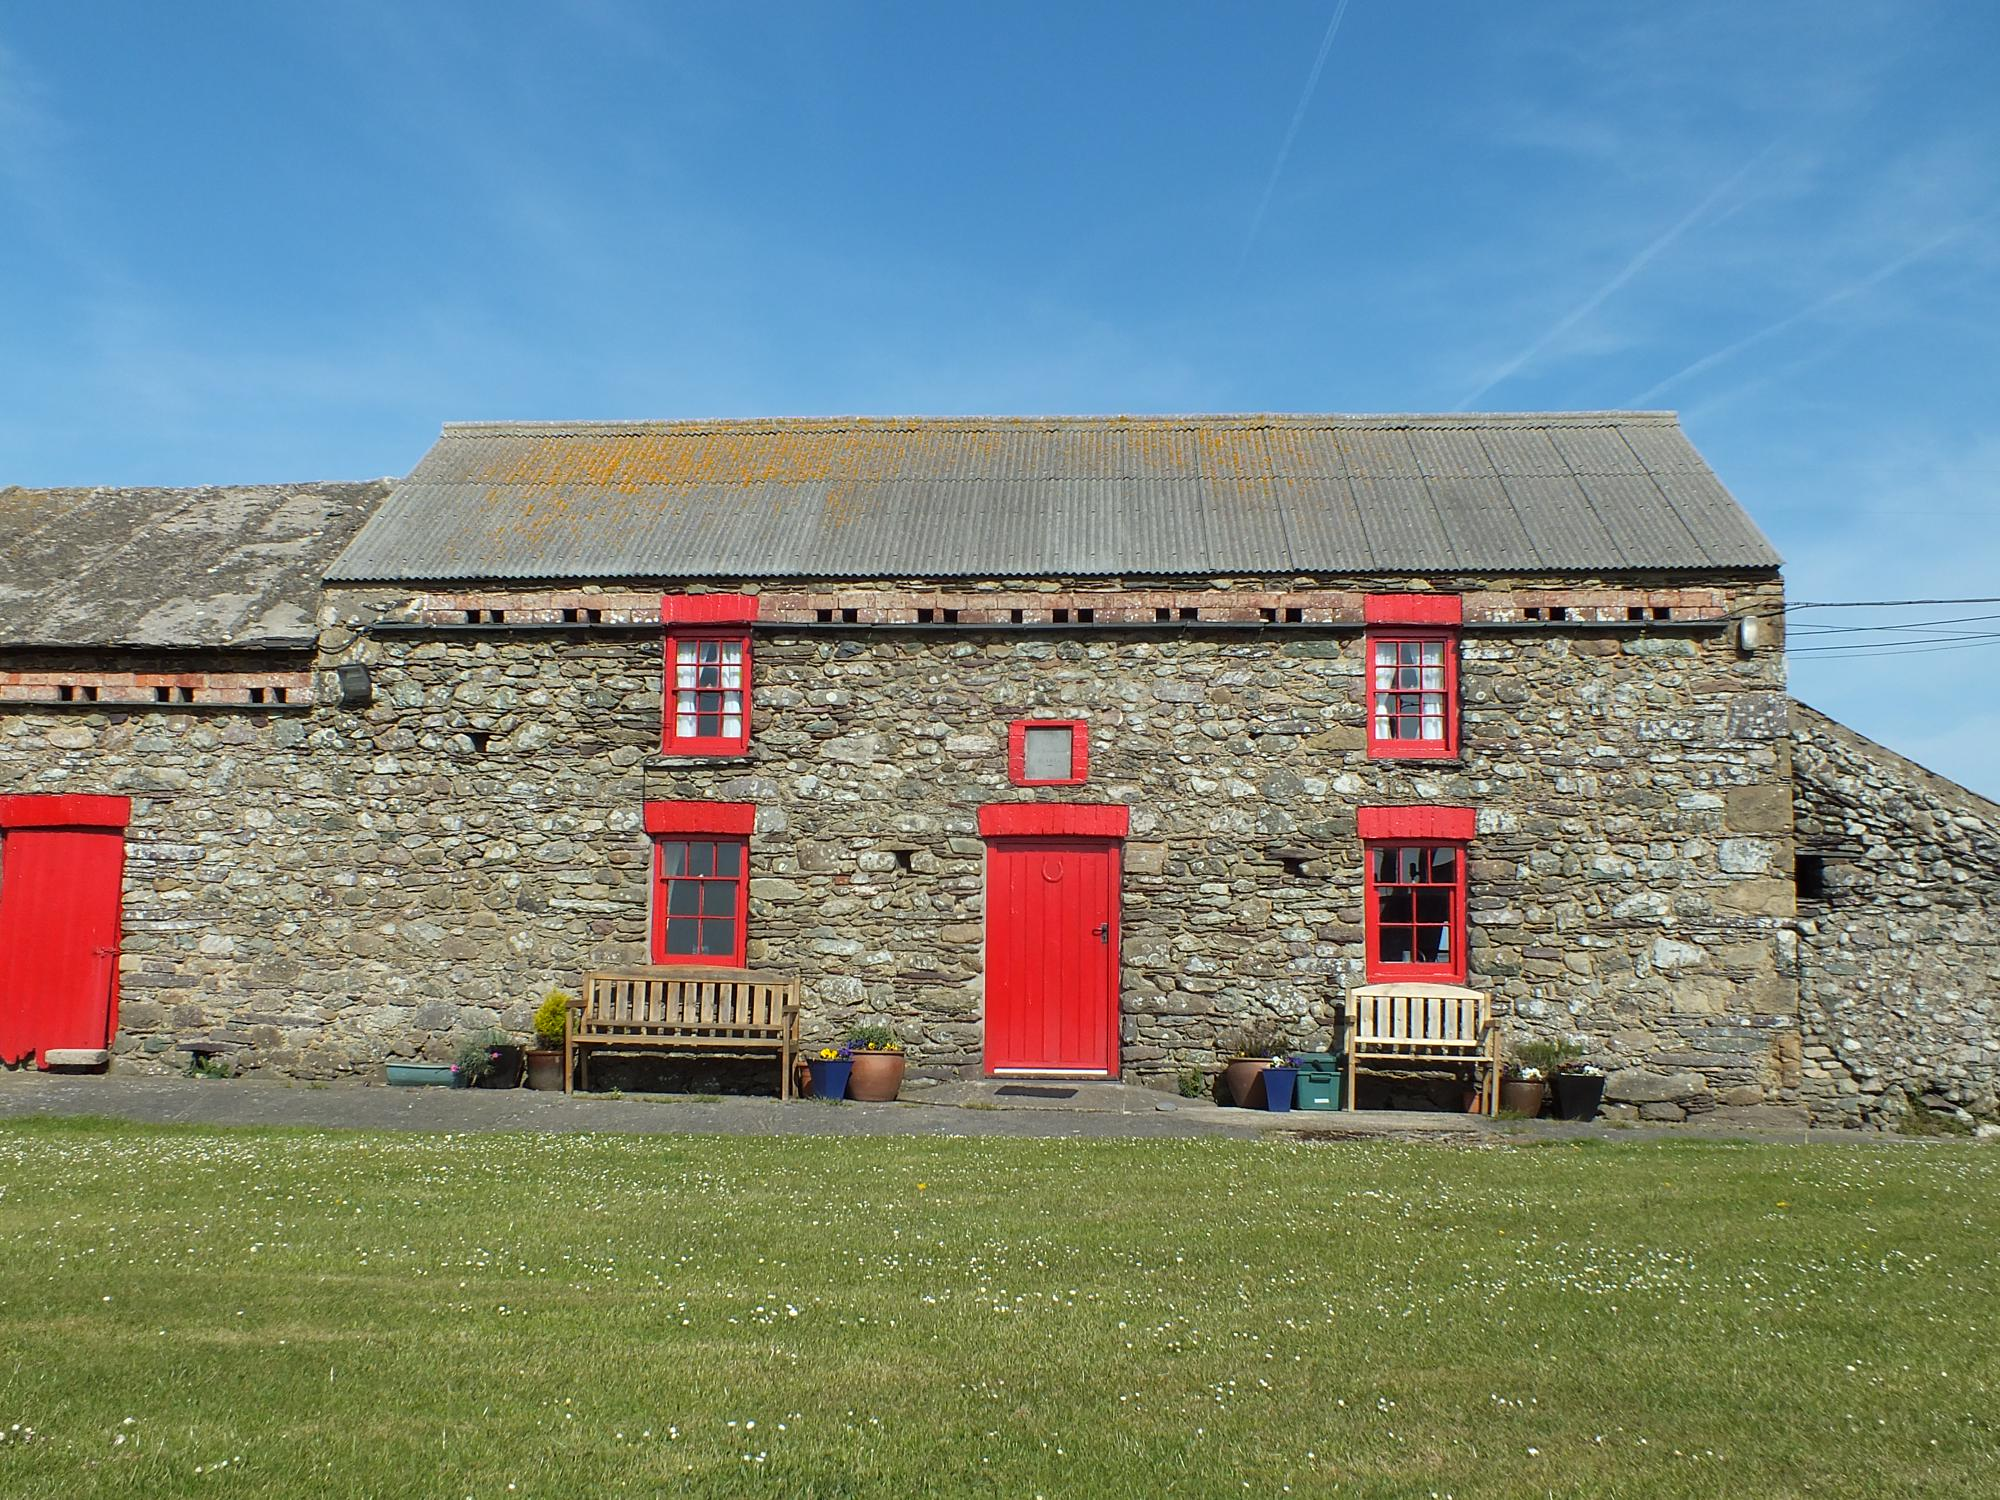 Self-Catering in St Davids holidays at Cool Places